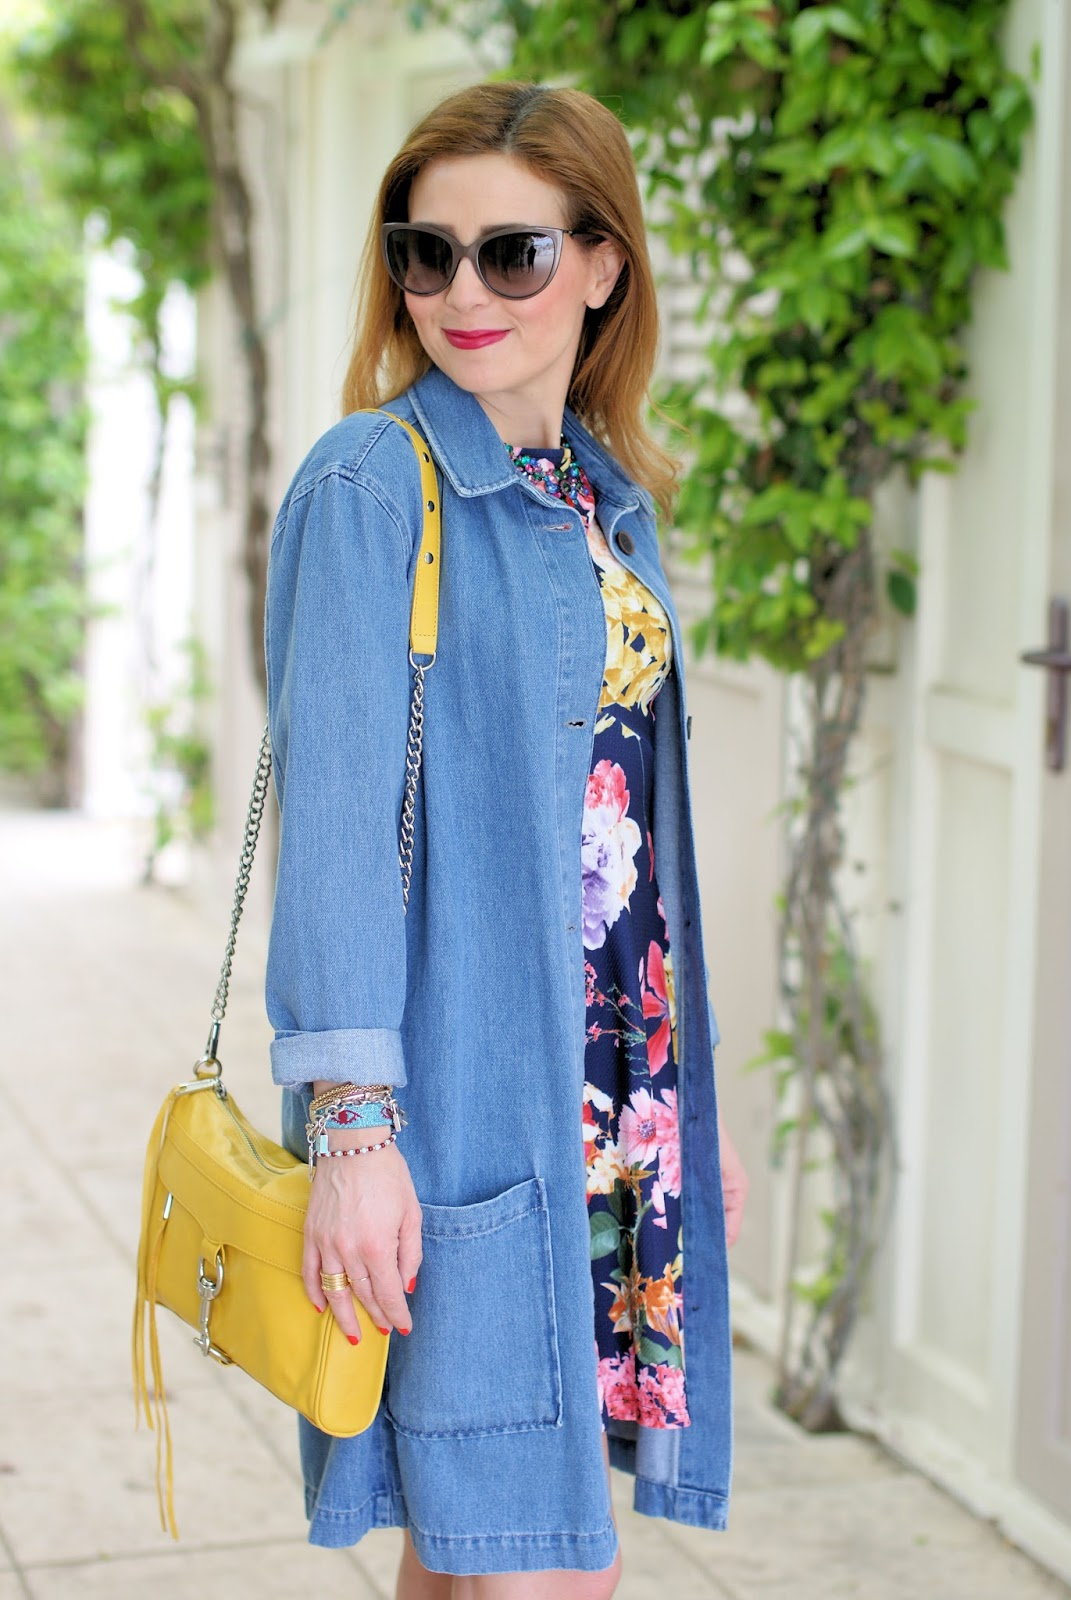 Zara jeans coat and asos floral dress on Fashion and Cookies fashion blog, fashion blogger style